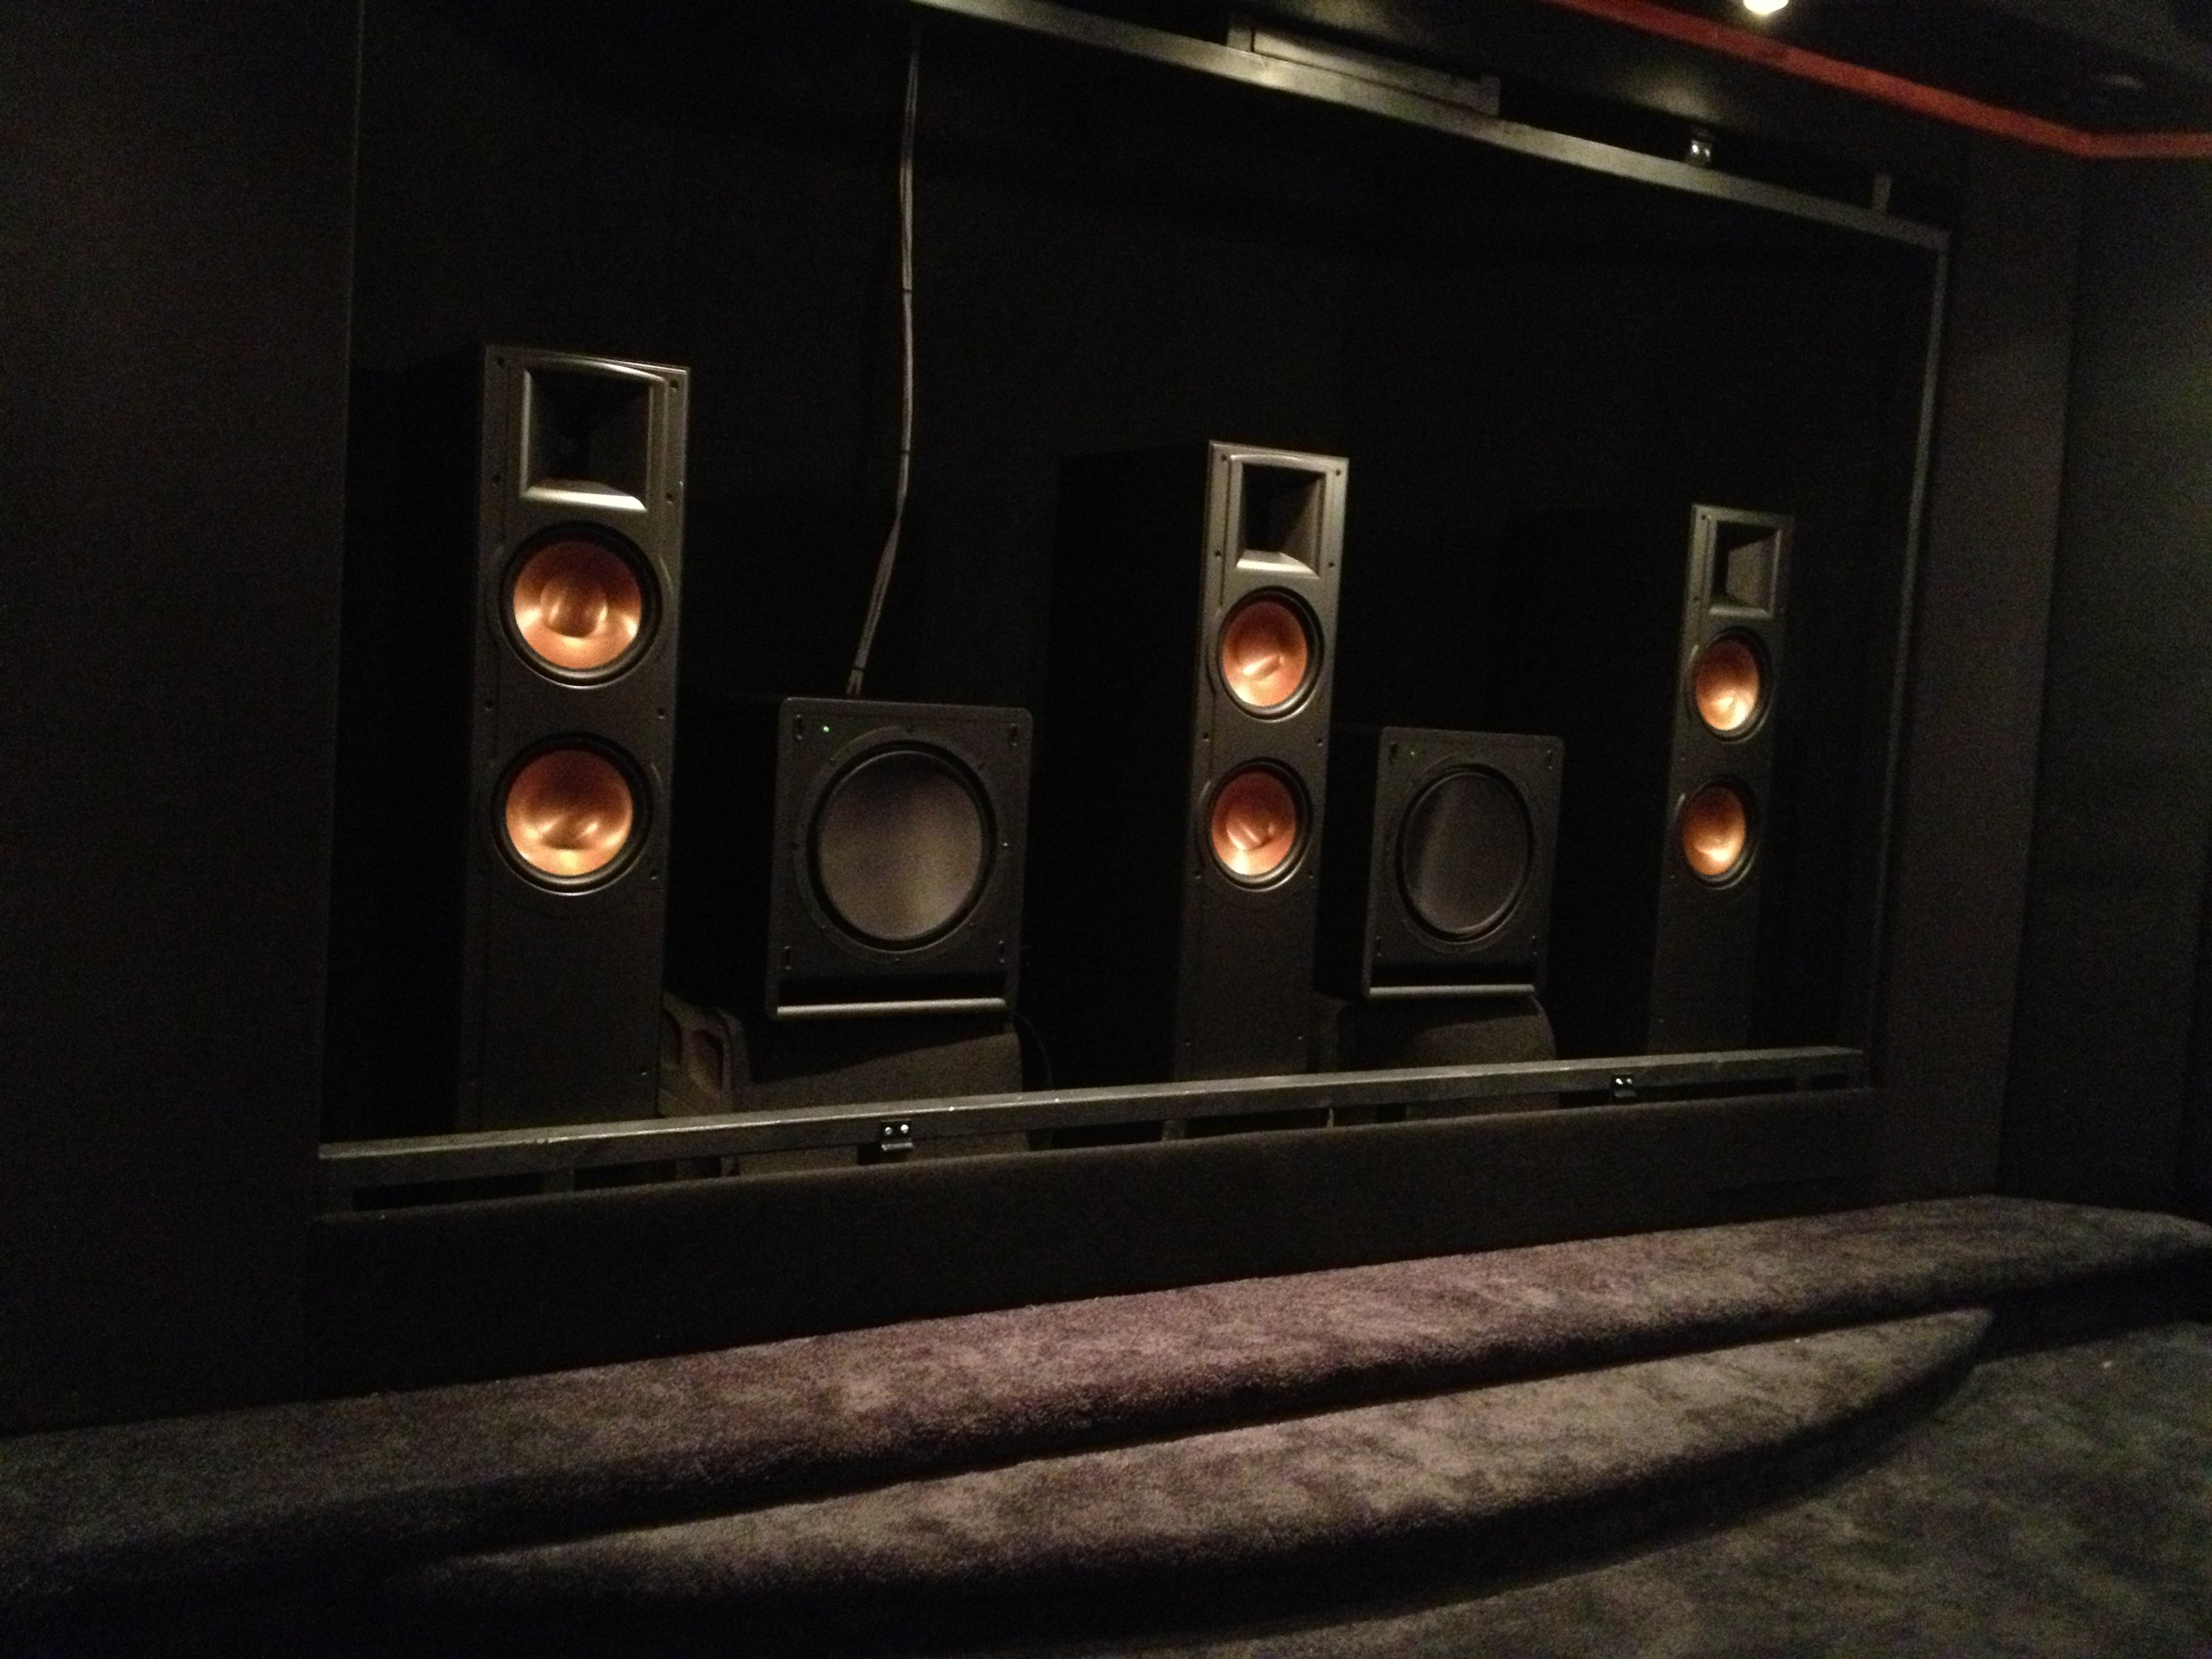 Home theatre with 2 speakers not, klipsch hd theater 500